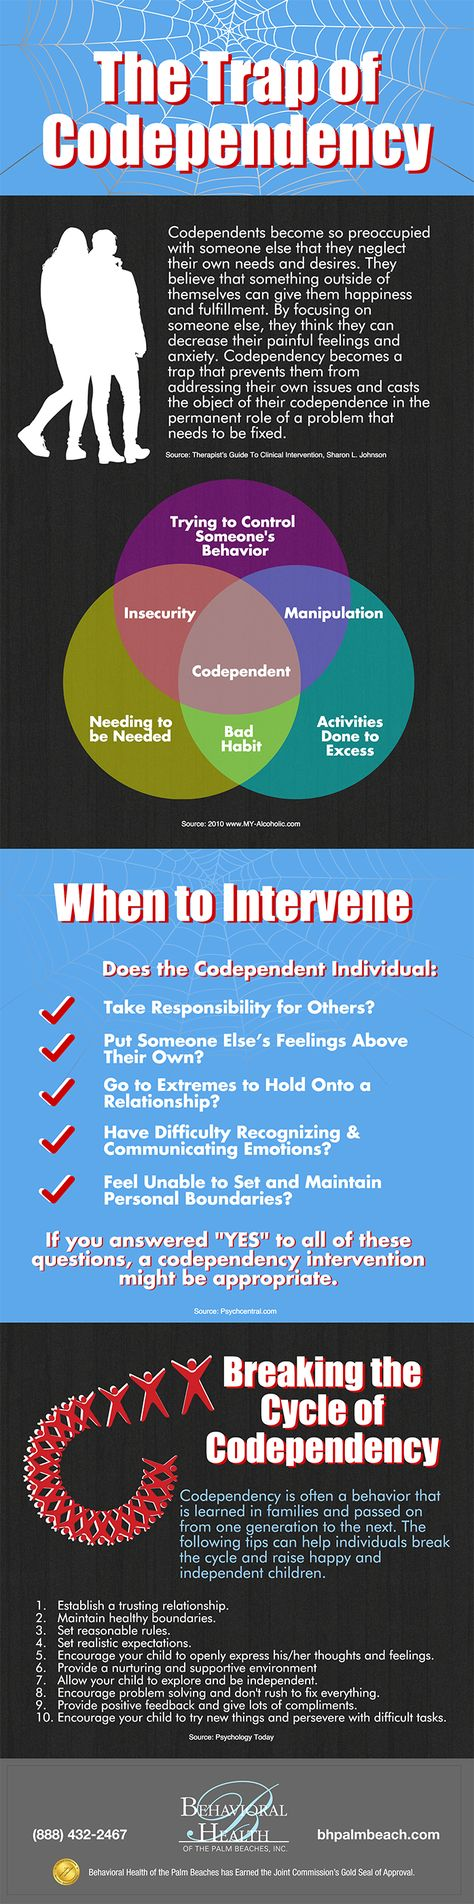 How To Deal With Codependency Issues